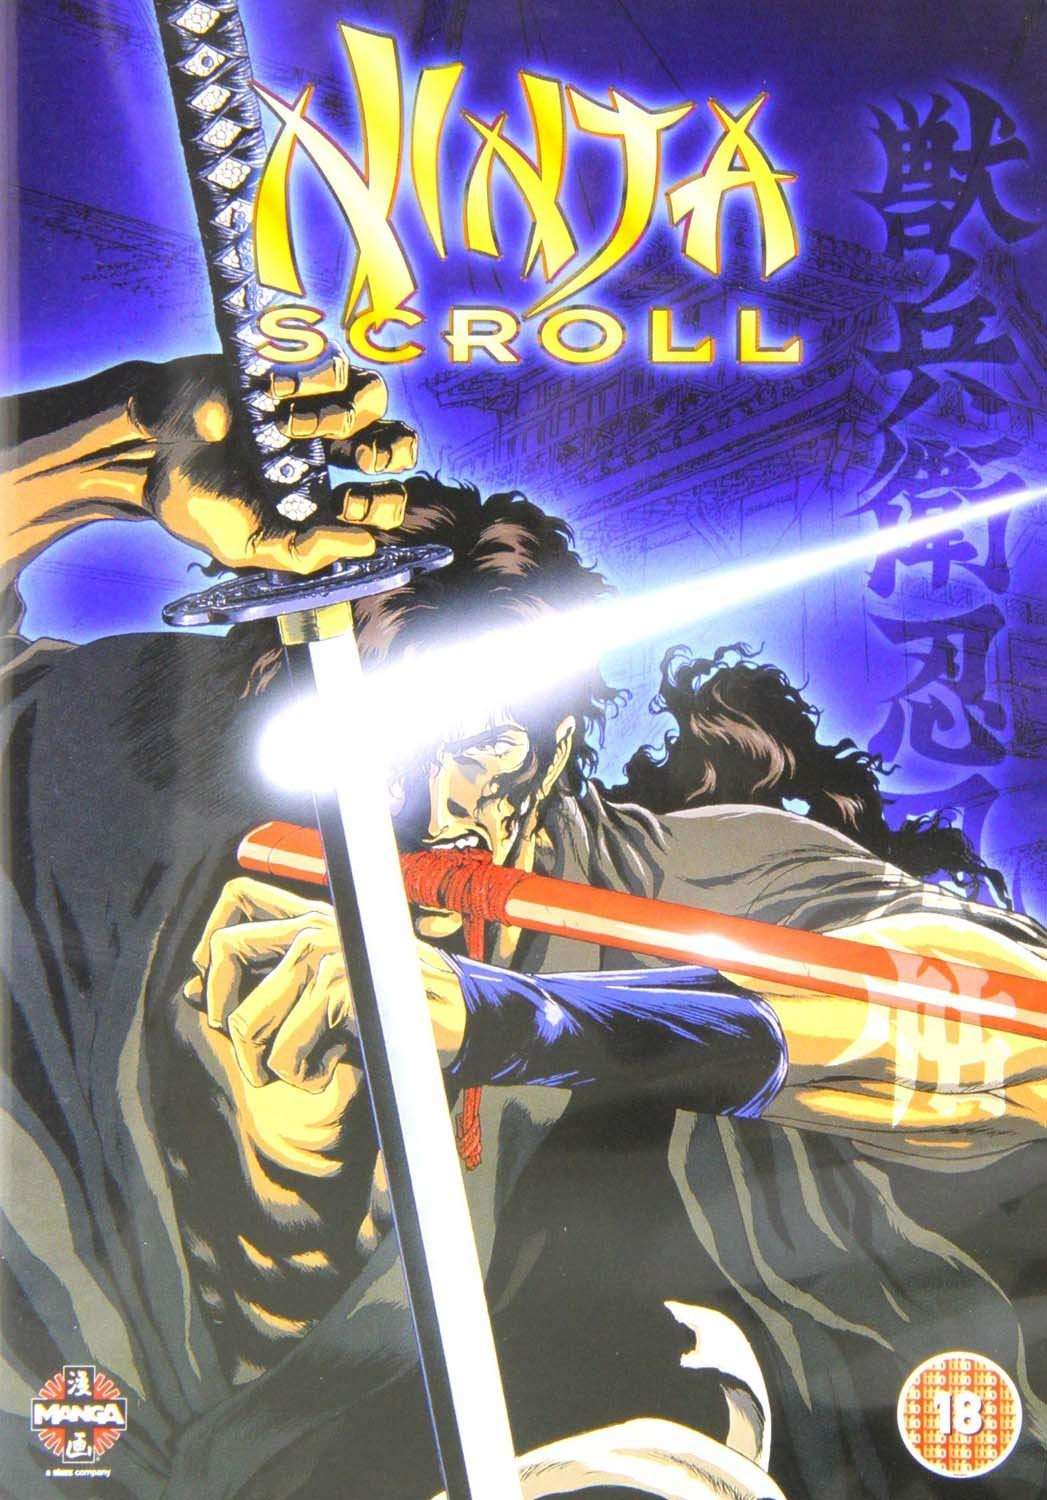 Ninja Scroll [DVD] by Yoshiaki Kawajiri: Amazon.es: Cine y ...